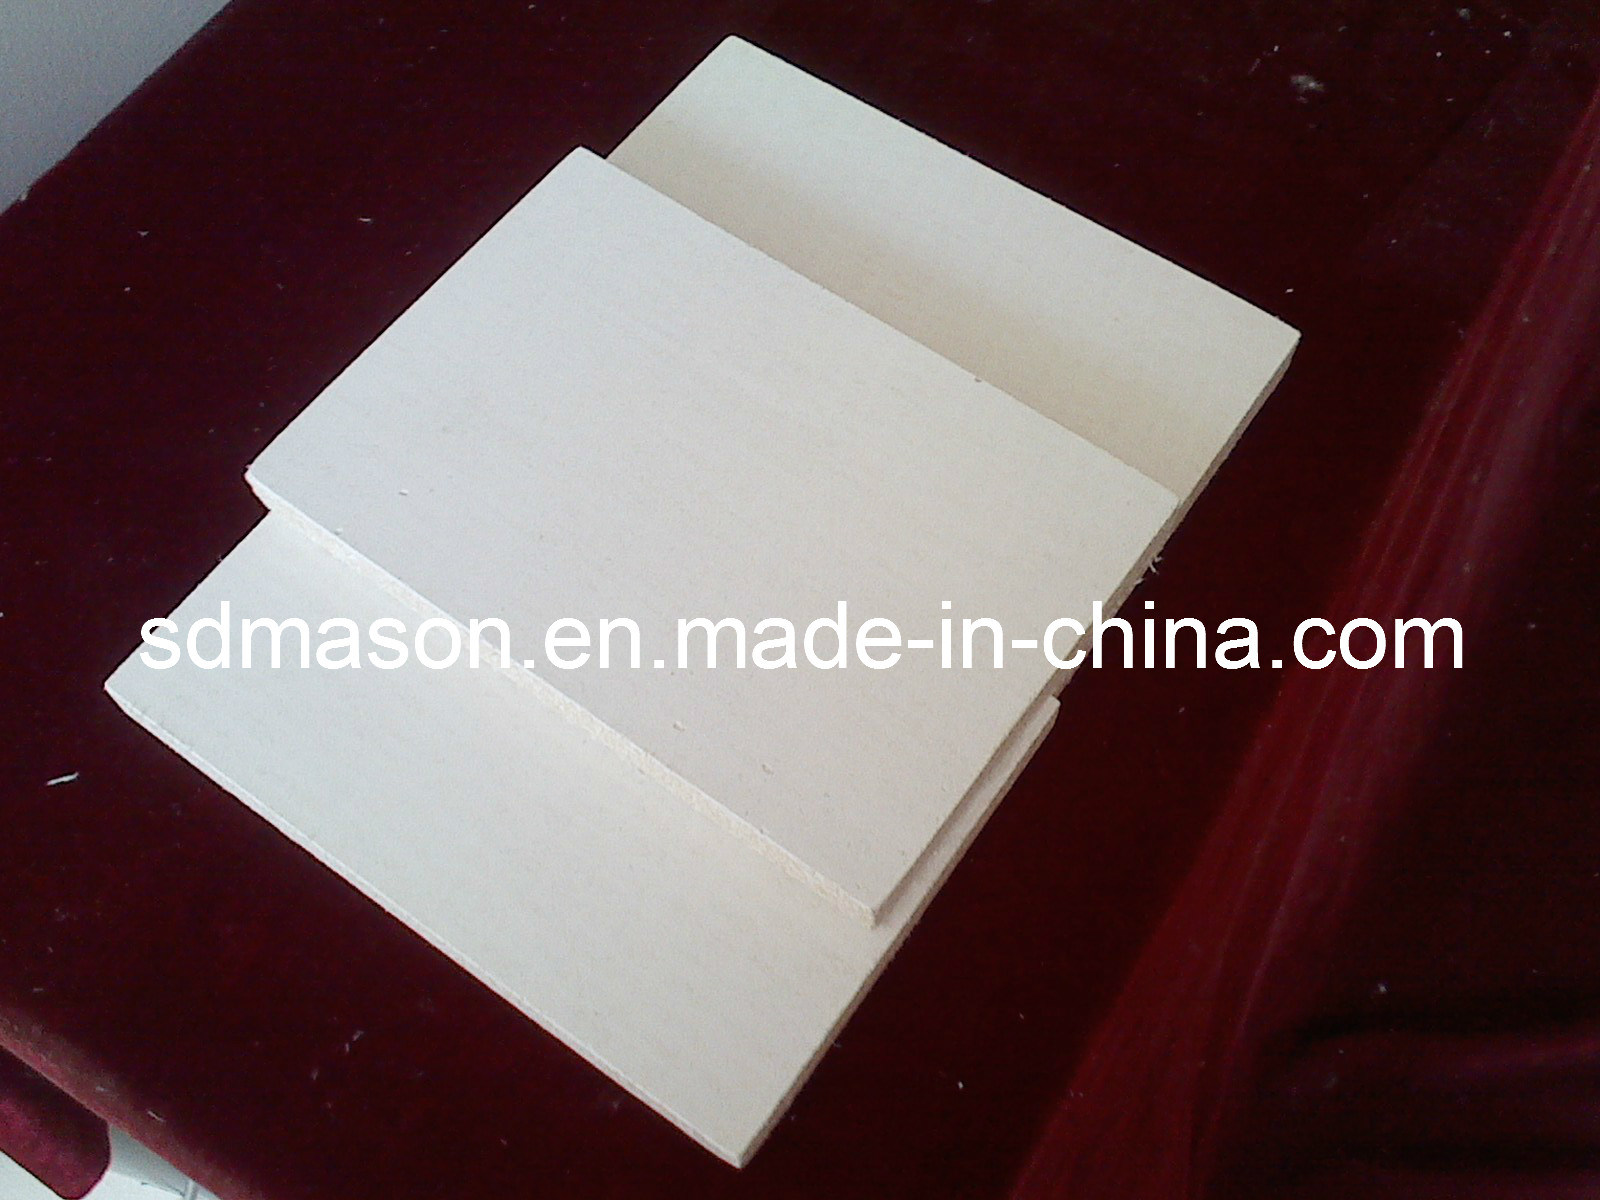 En13501 Fireproof Magnesium Oxide Board for Drywall